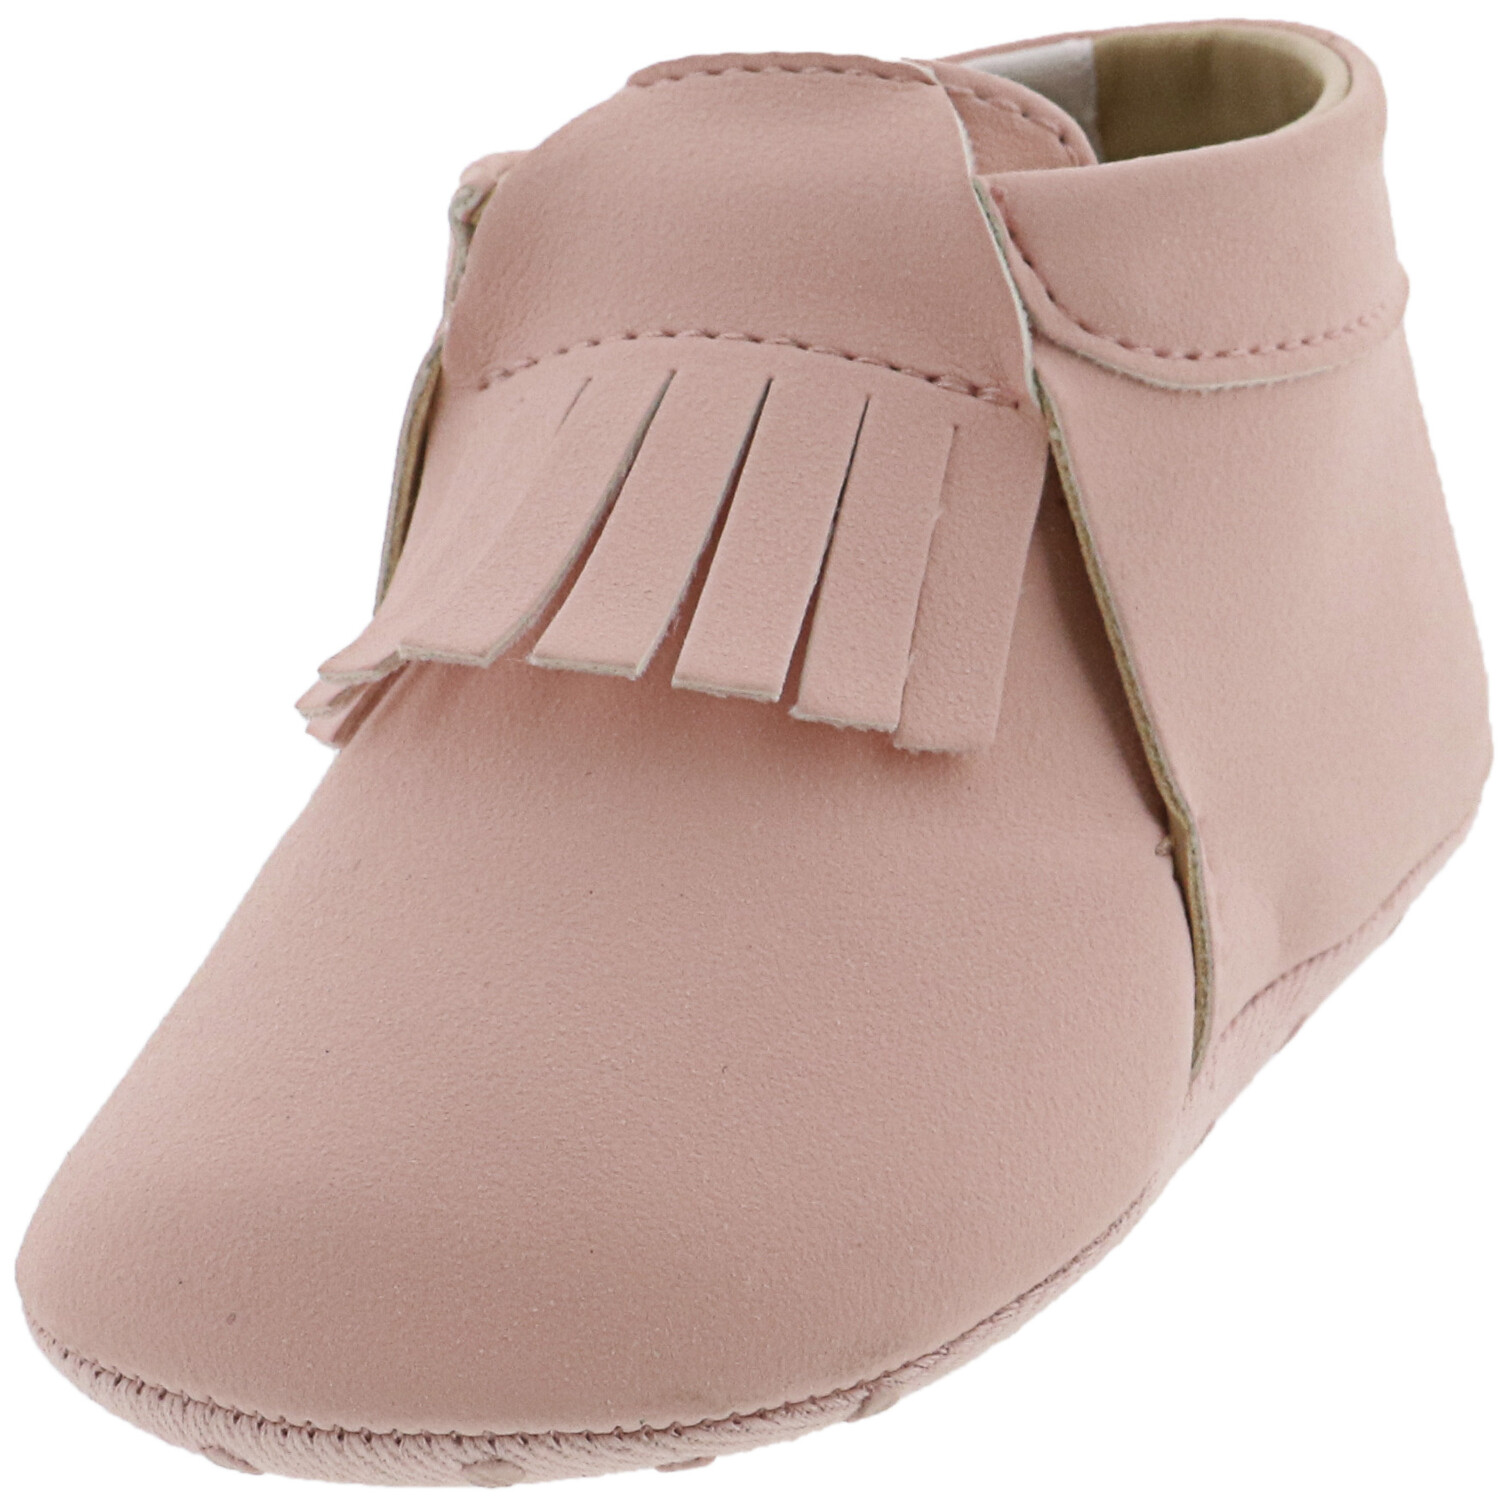 Janie And Jack Moccasin Crib Bootie Bubblegum Pink Ankle-High Booties & Shoe - 5M